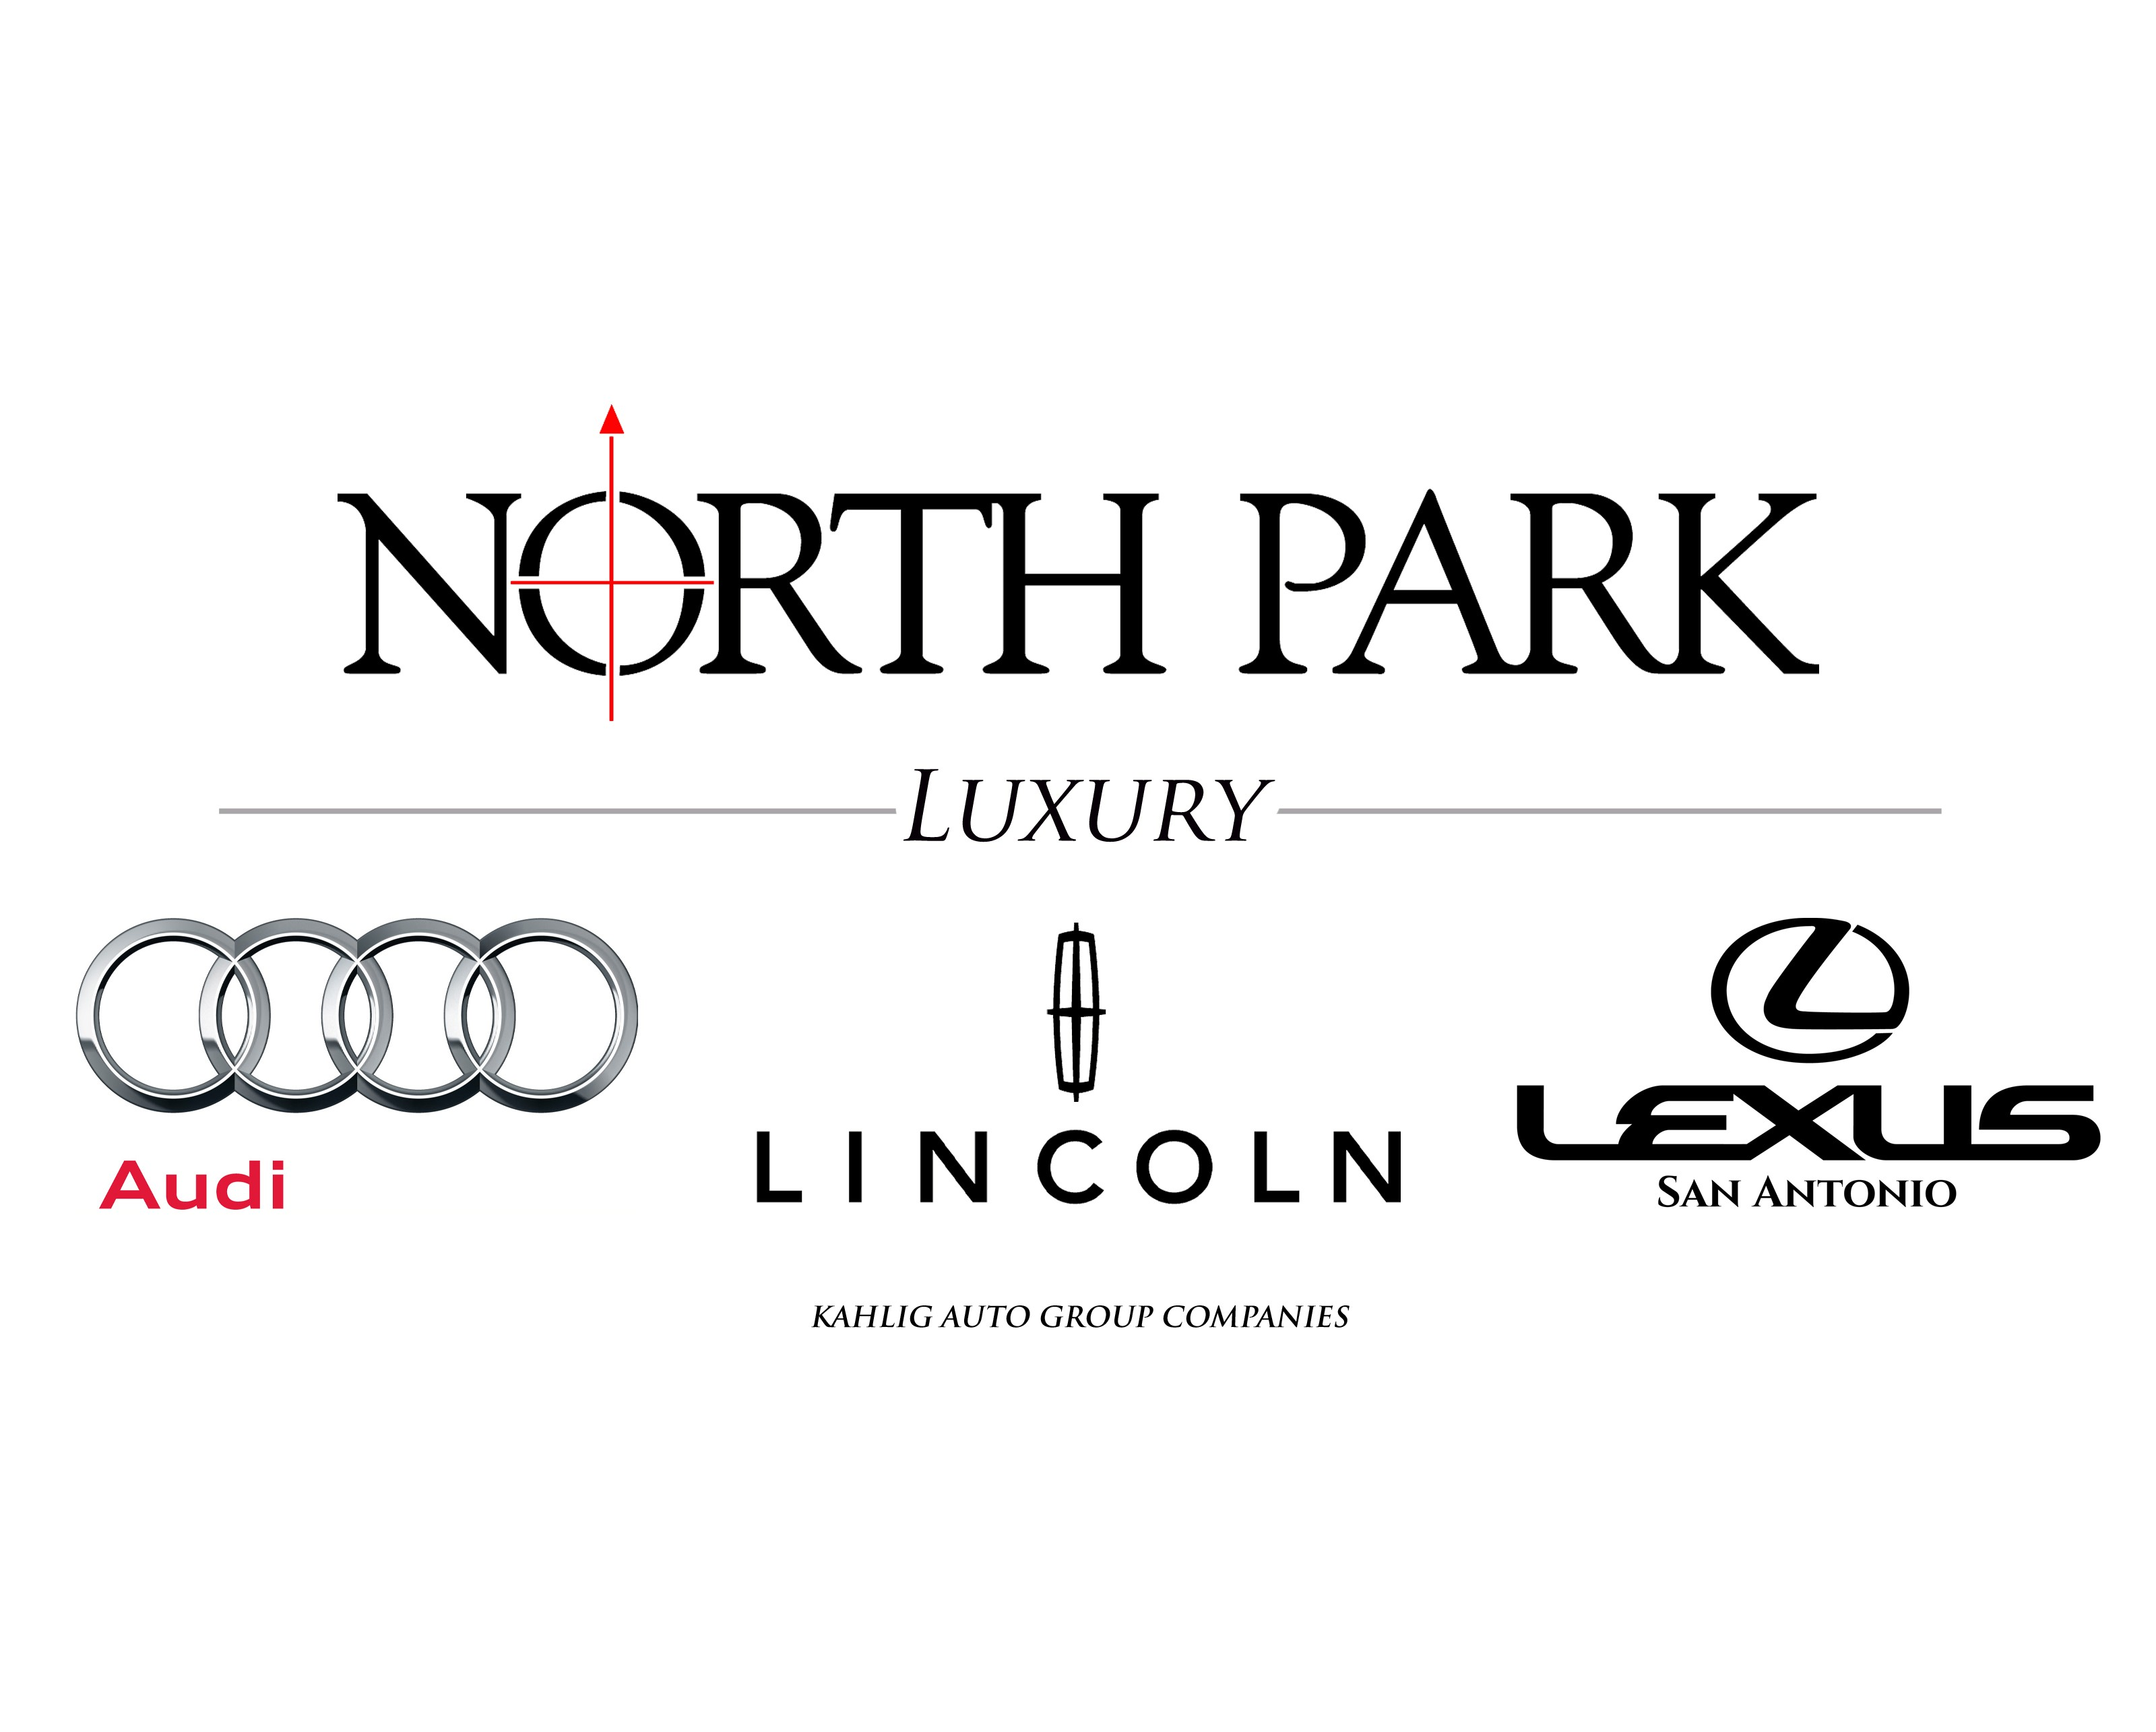 North Park Luxury Dealerships - Audi, Lexus & Lincoln